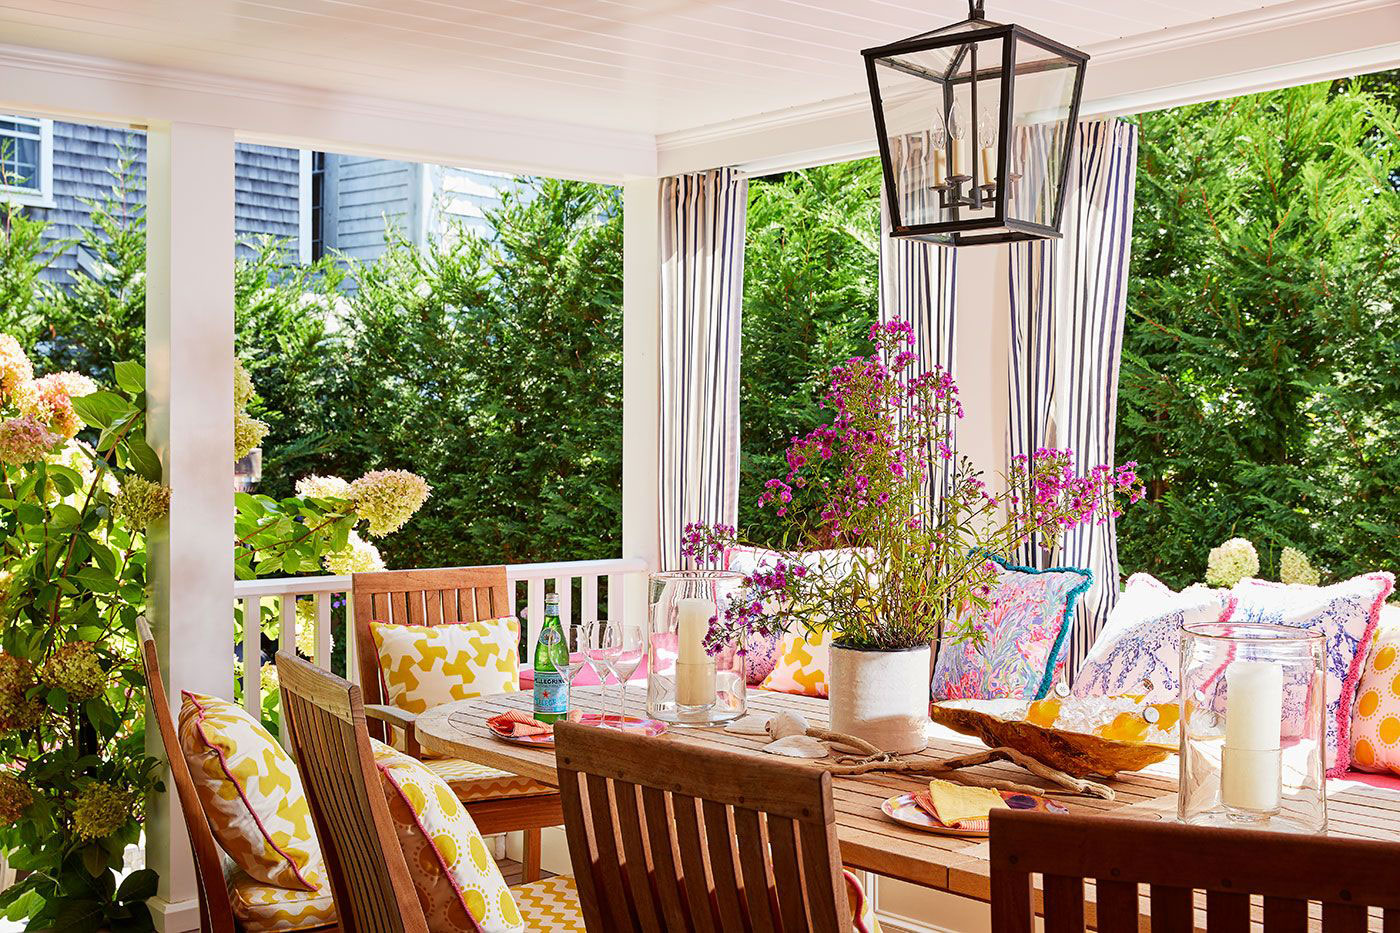 Porch with table and chairs surrounded by lush plantings